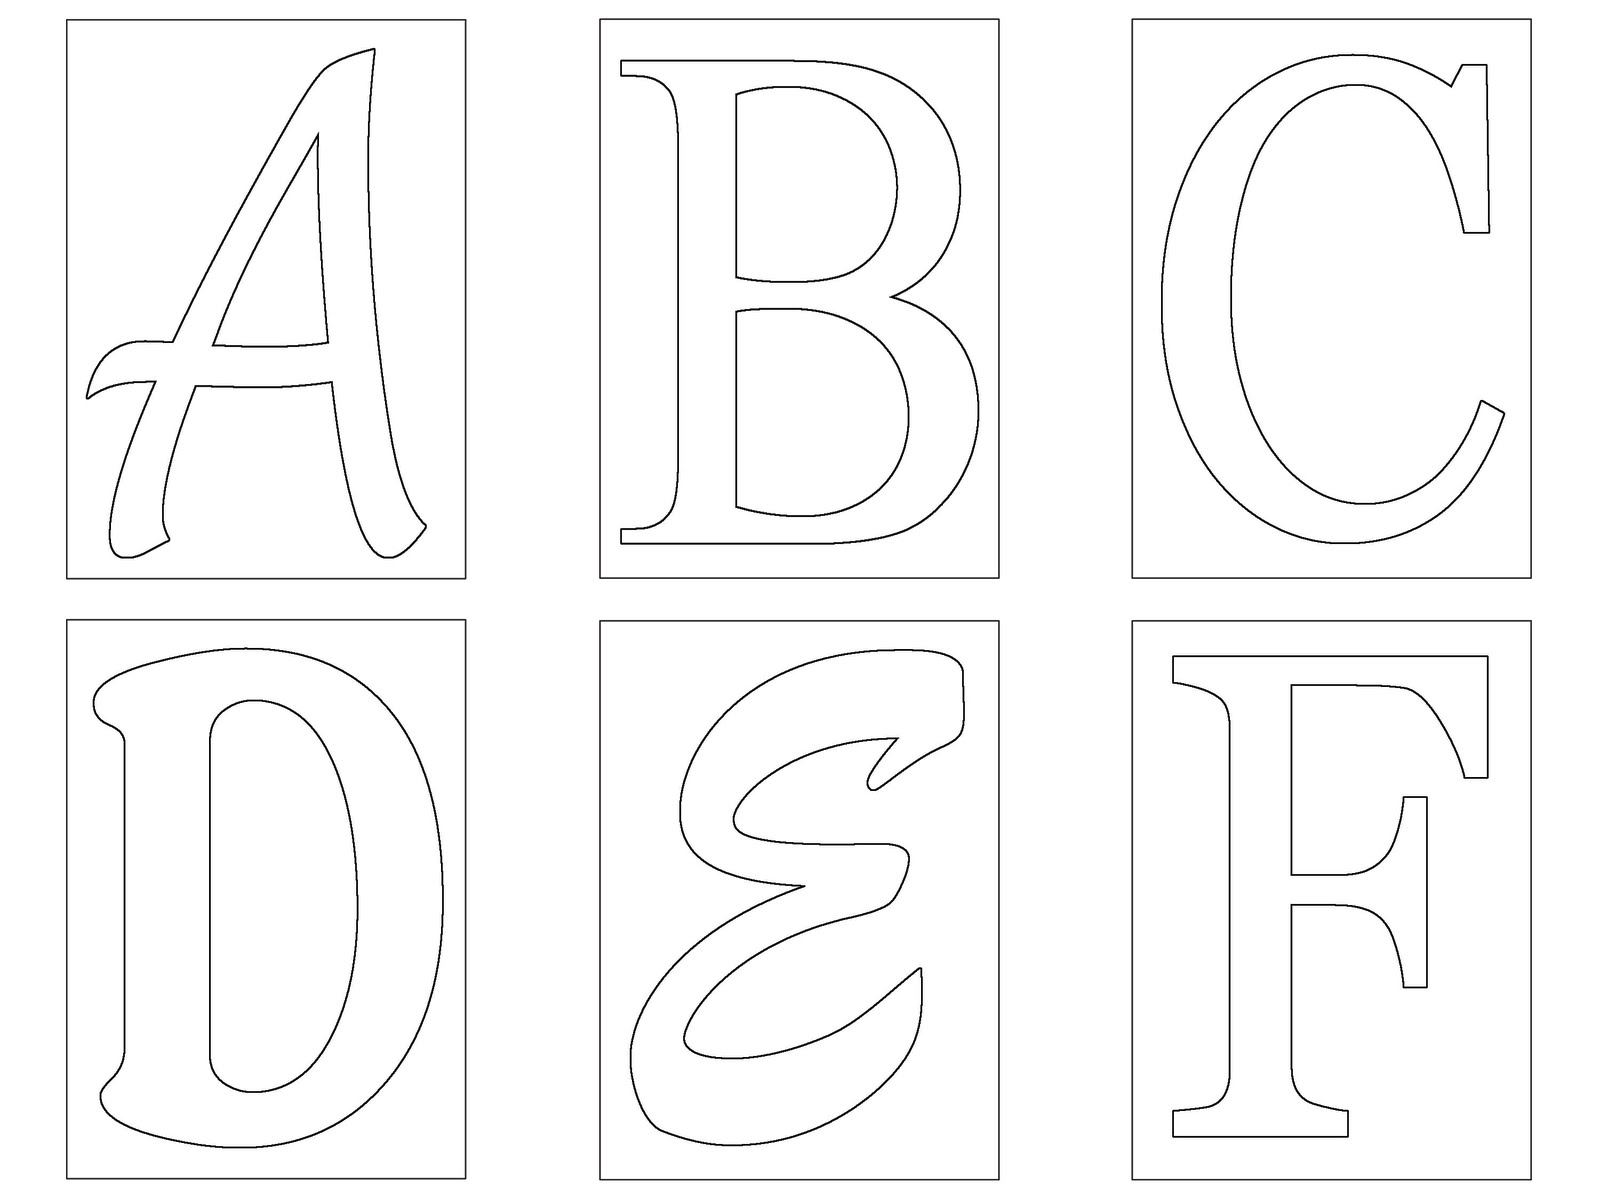 Resource image with regard to printable cut out letters alphabet